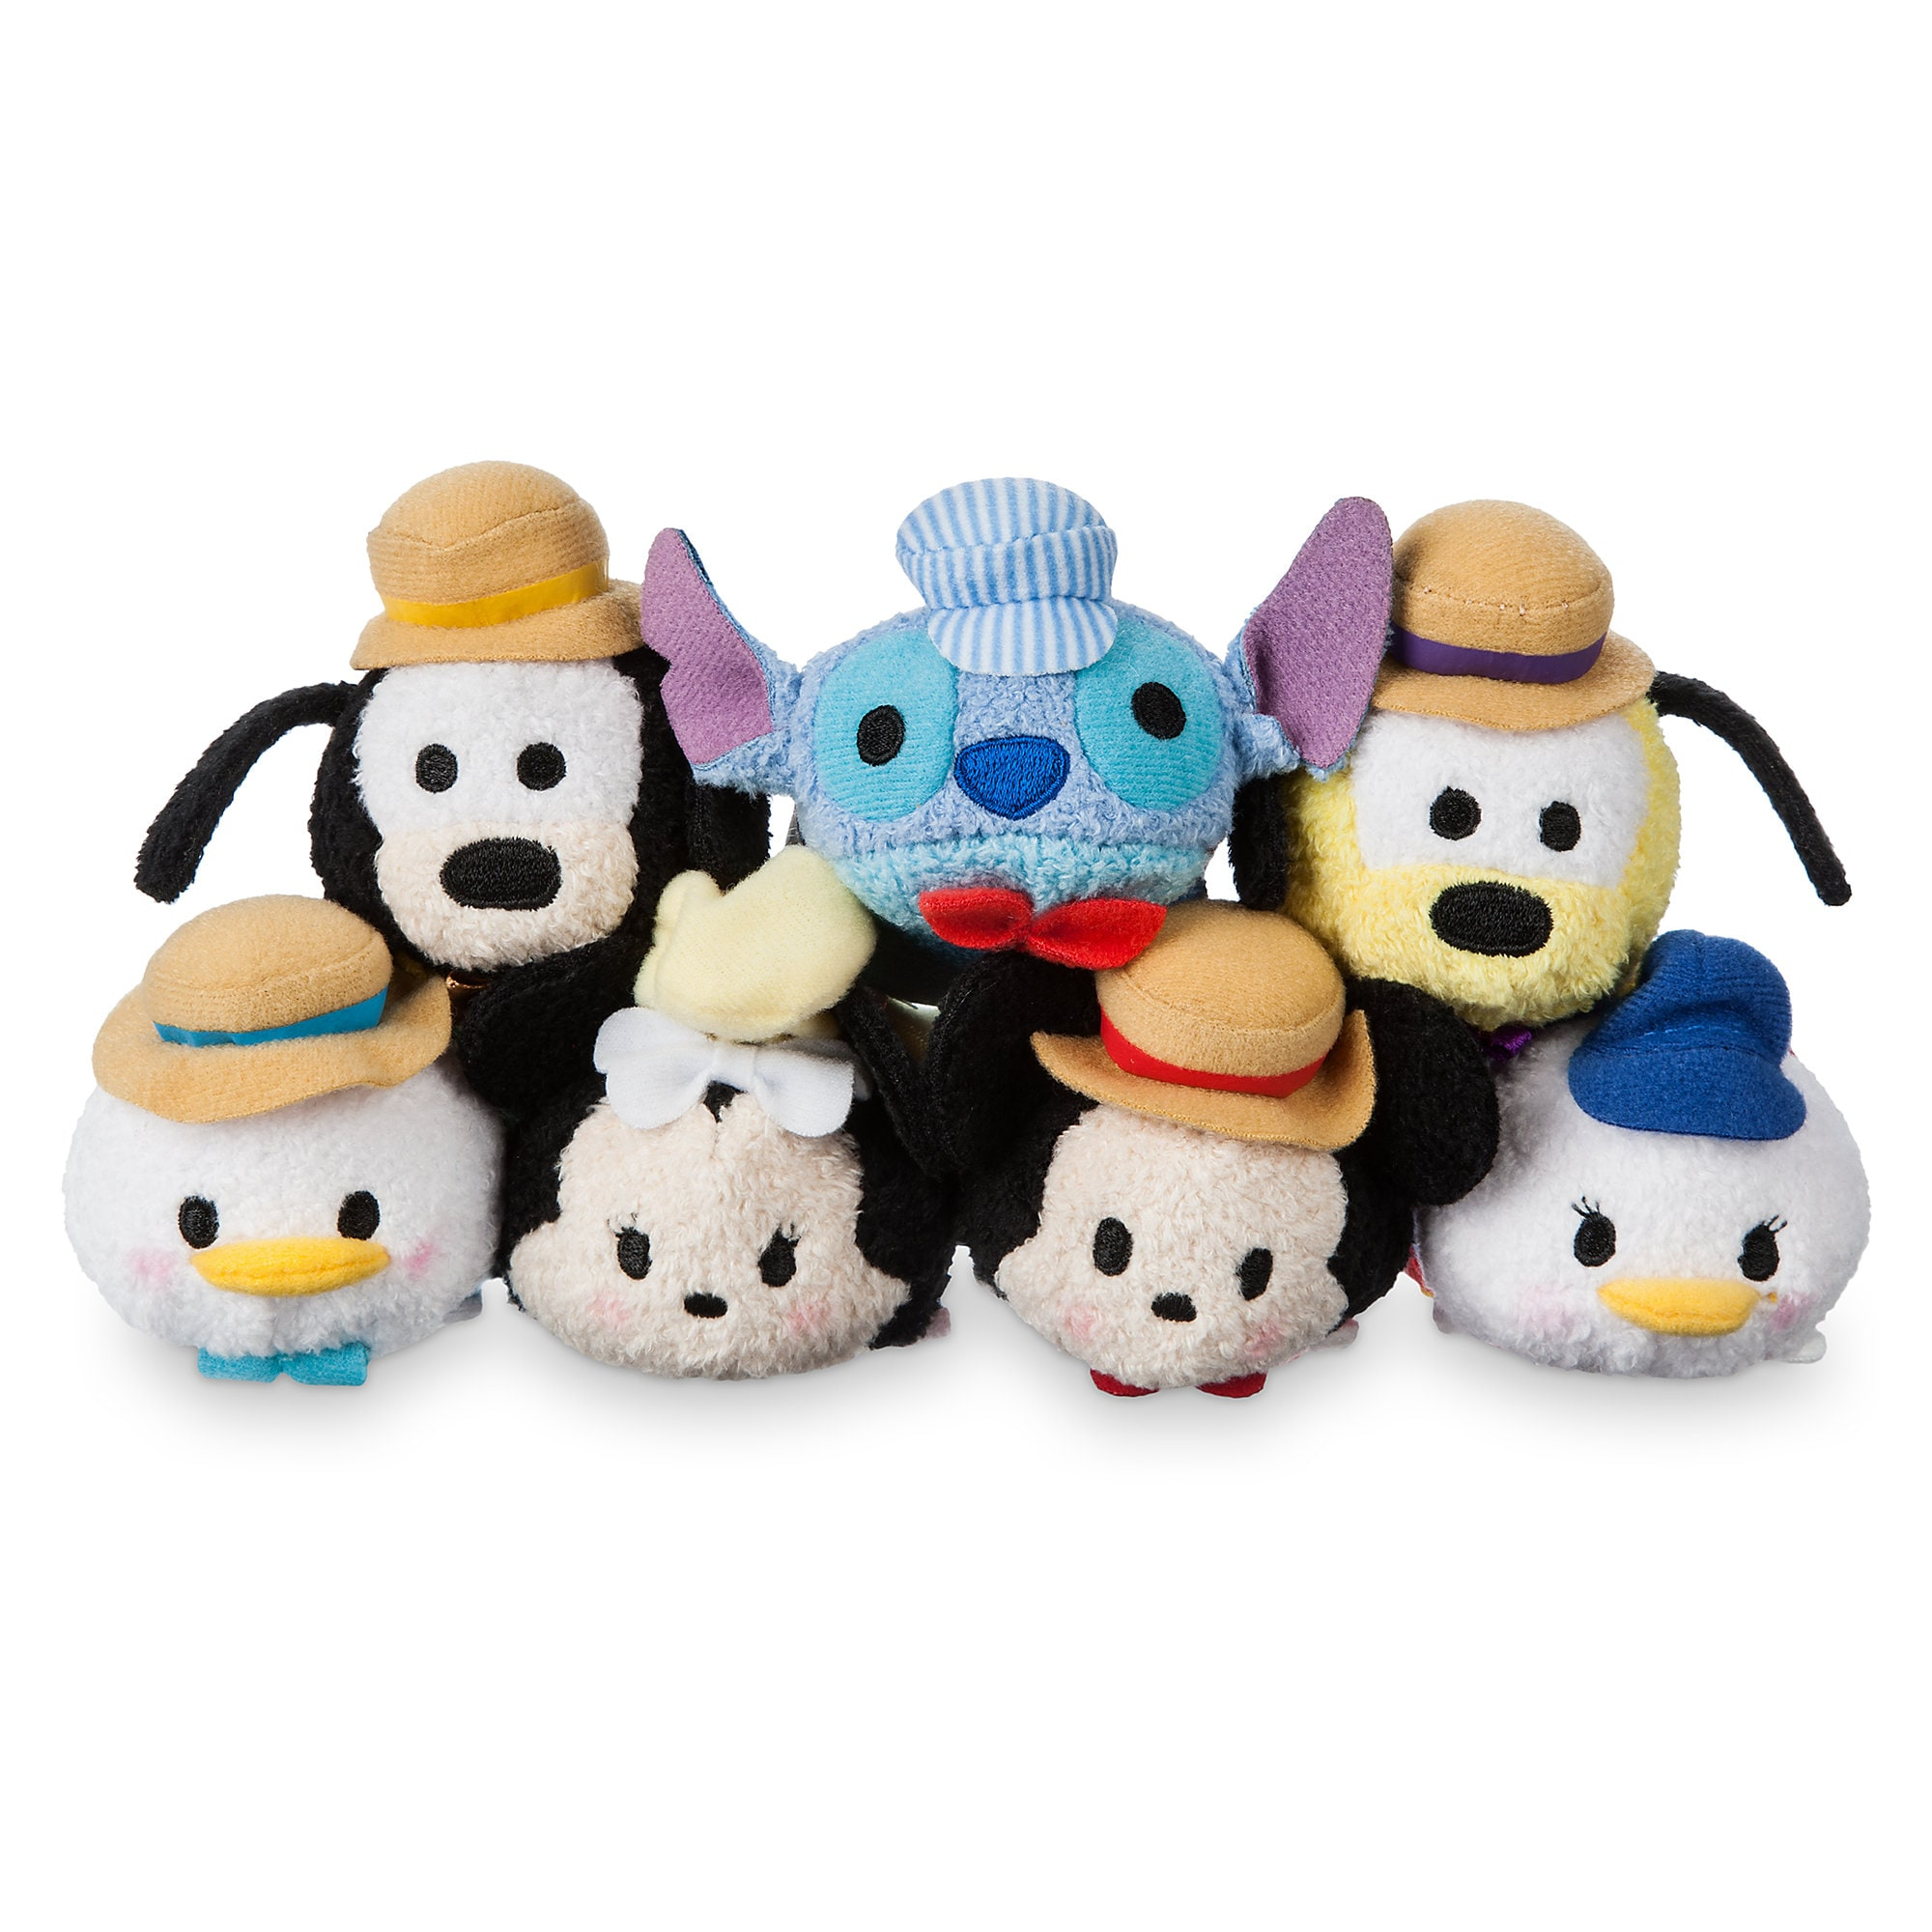 Main Street U.S.A. Mini ''Tsum Tsum'' Plush Collection